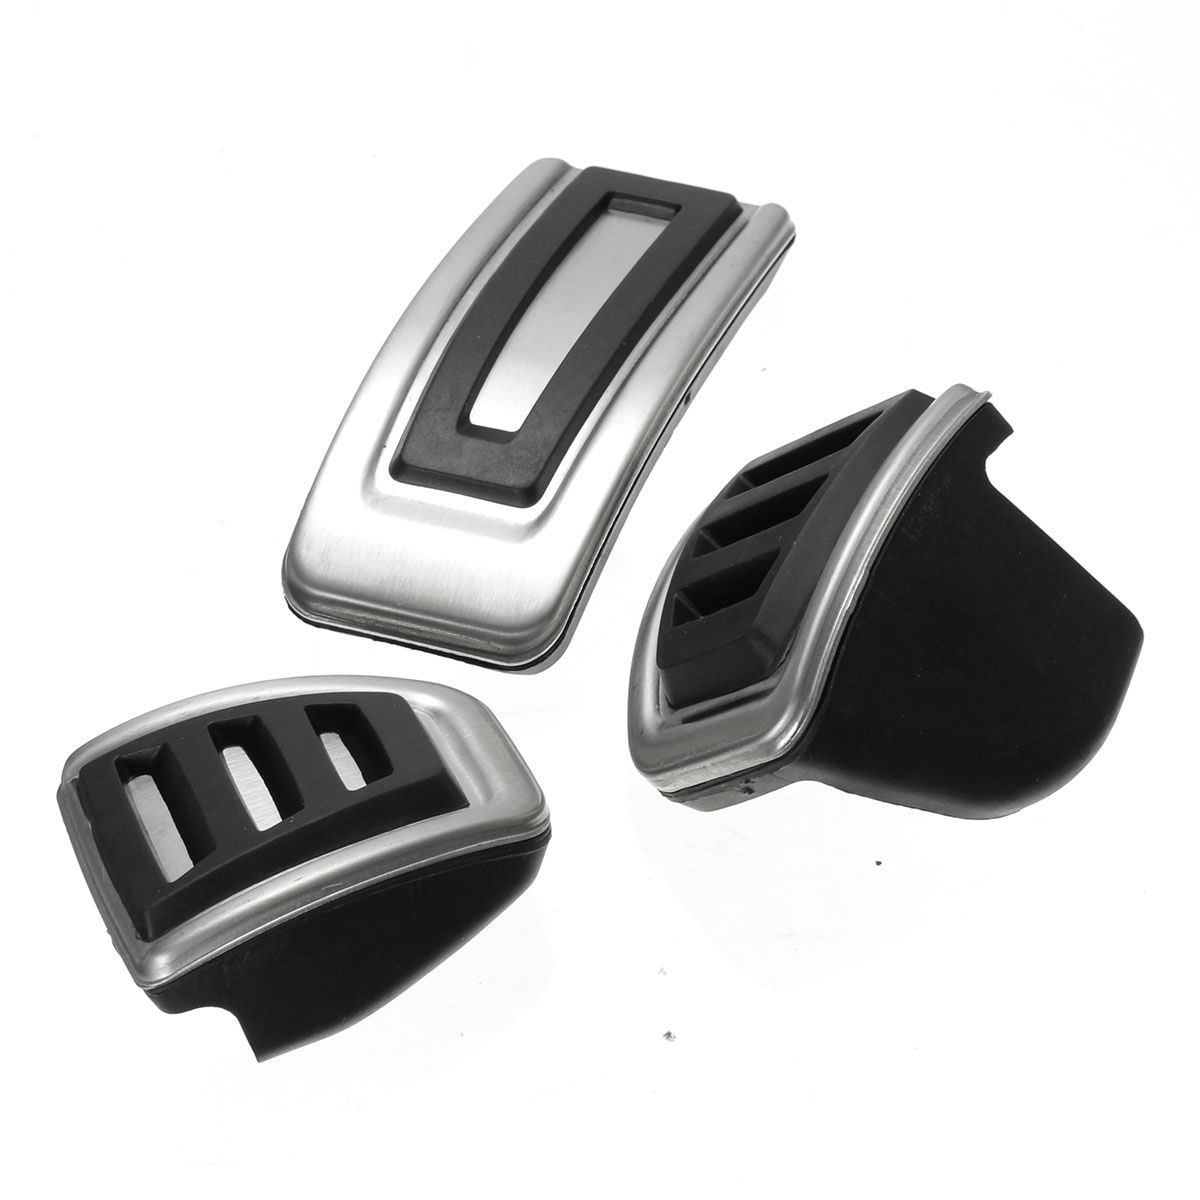 3Pcs/Set Car Clutch Brake Accelerator Pedal Footrest Pad Covers For Skoda Seat Fabia for VW Polo 9N 6R Bora Golf MK4 IV